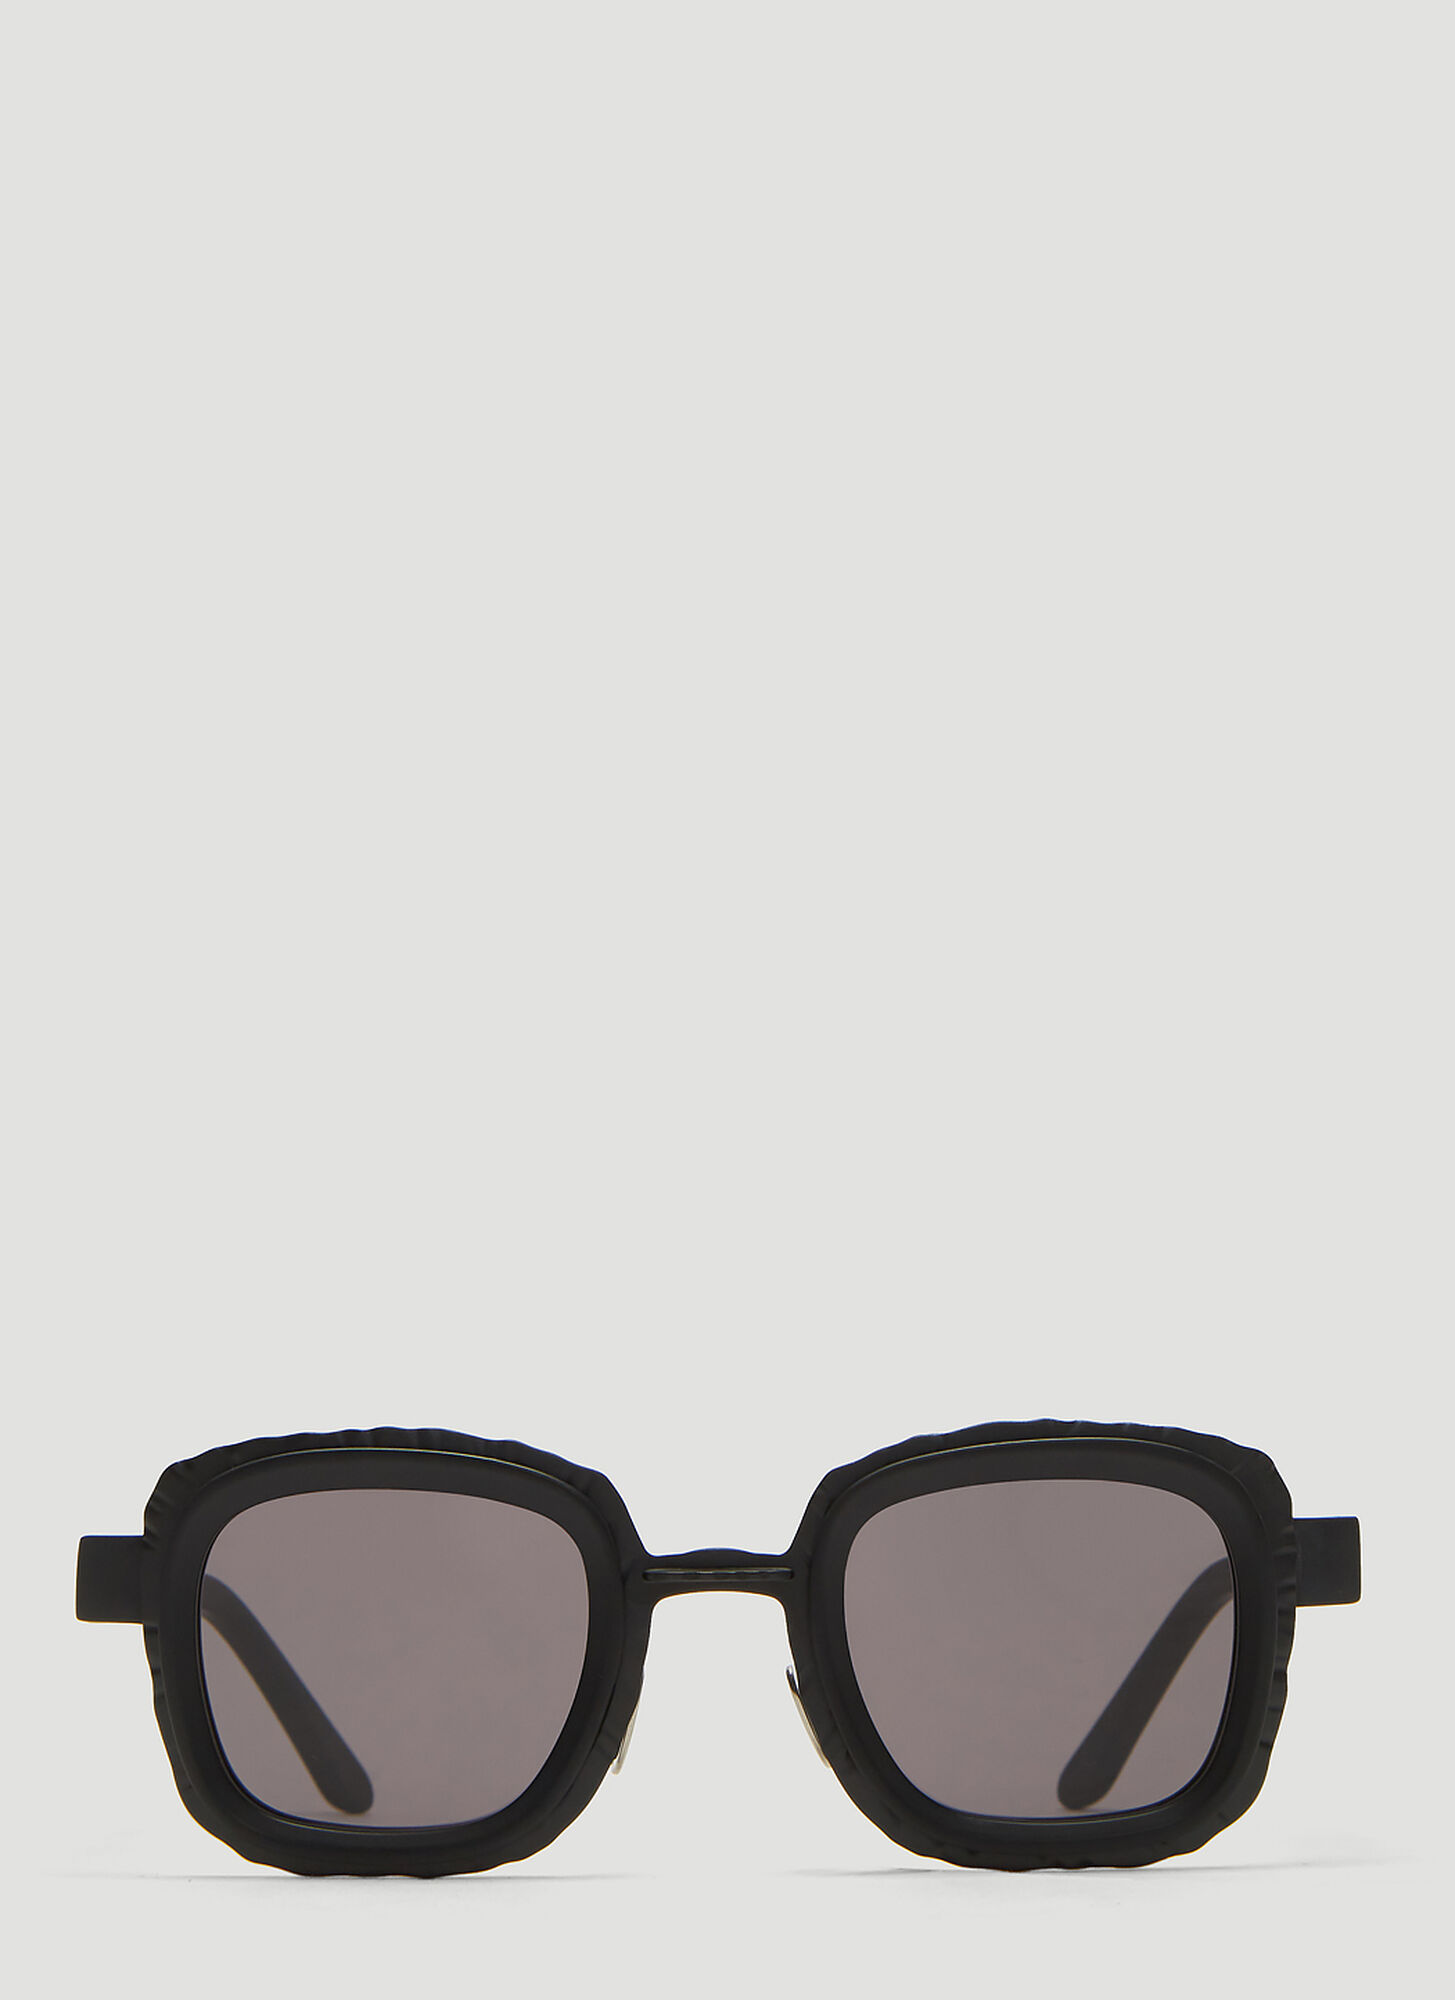 Kuboraum Z8 Square Sunglasses in Grey